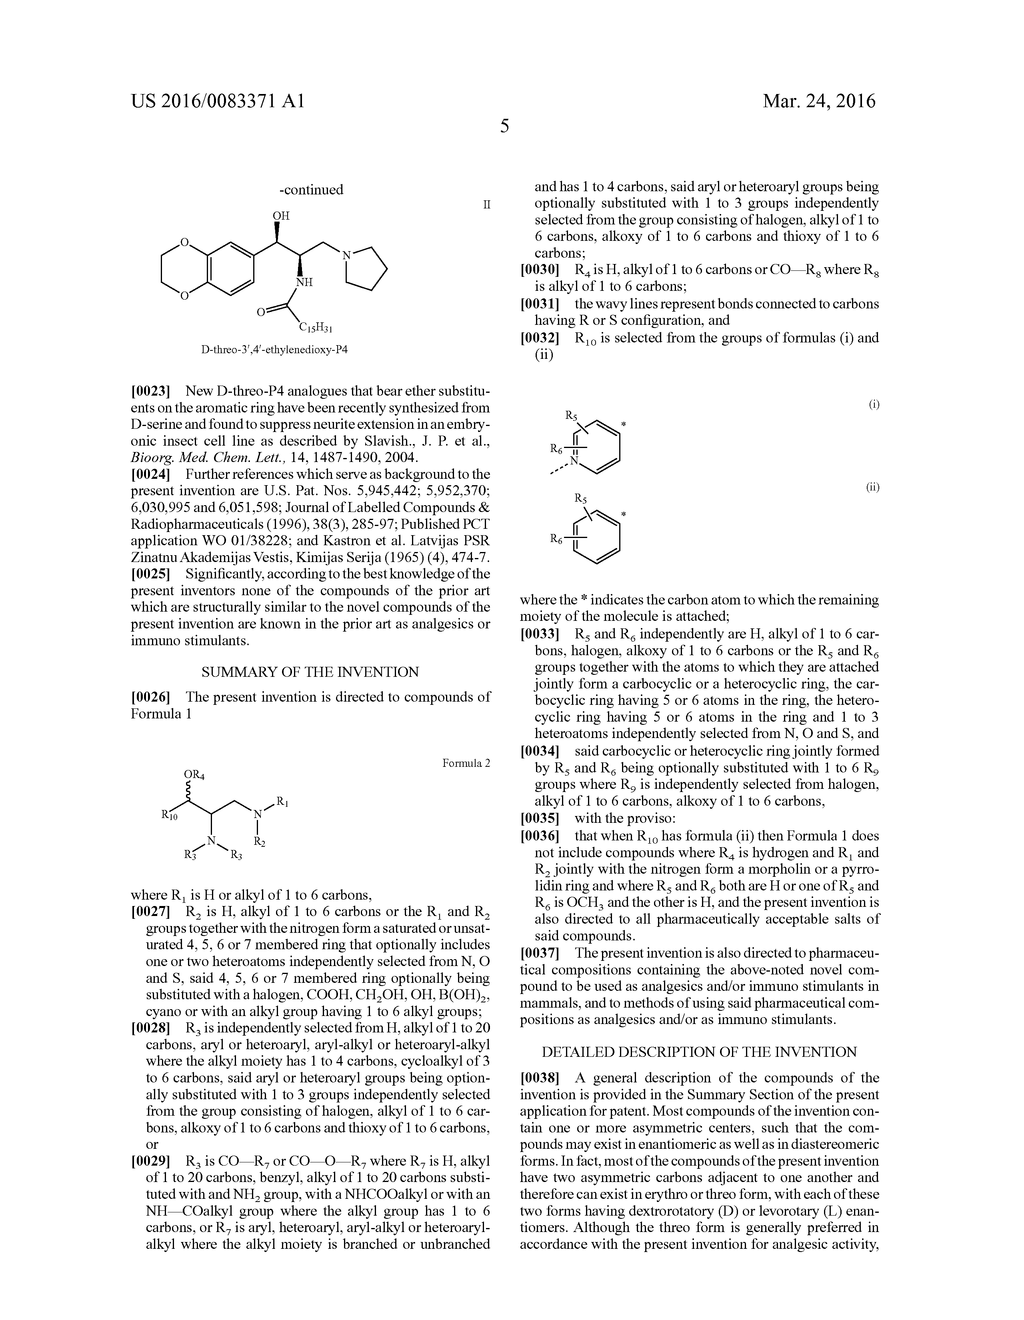 1-ARYL-1-HYDROXY-2,3-DIAMINO-PROPYL AMINES,     1-HETEROARYL-1-HYDROXY-2,3-DIAMINO-PROPYL AMINES AND RELATED COMPOUNDS     HAVING ANALGESIC AND/OR IMMUNO STIMULANT ACTIVITY - diagram, schematic, and image 06